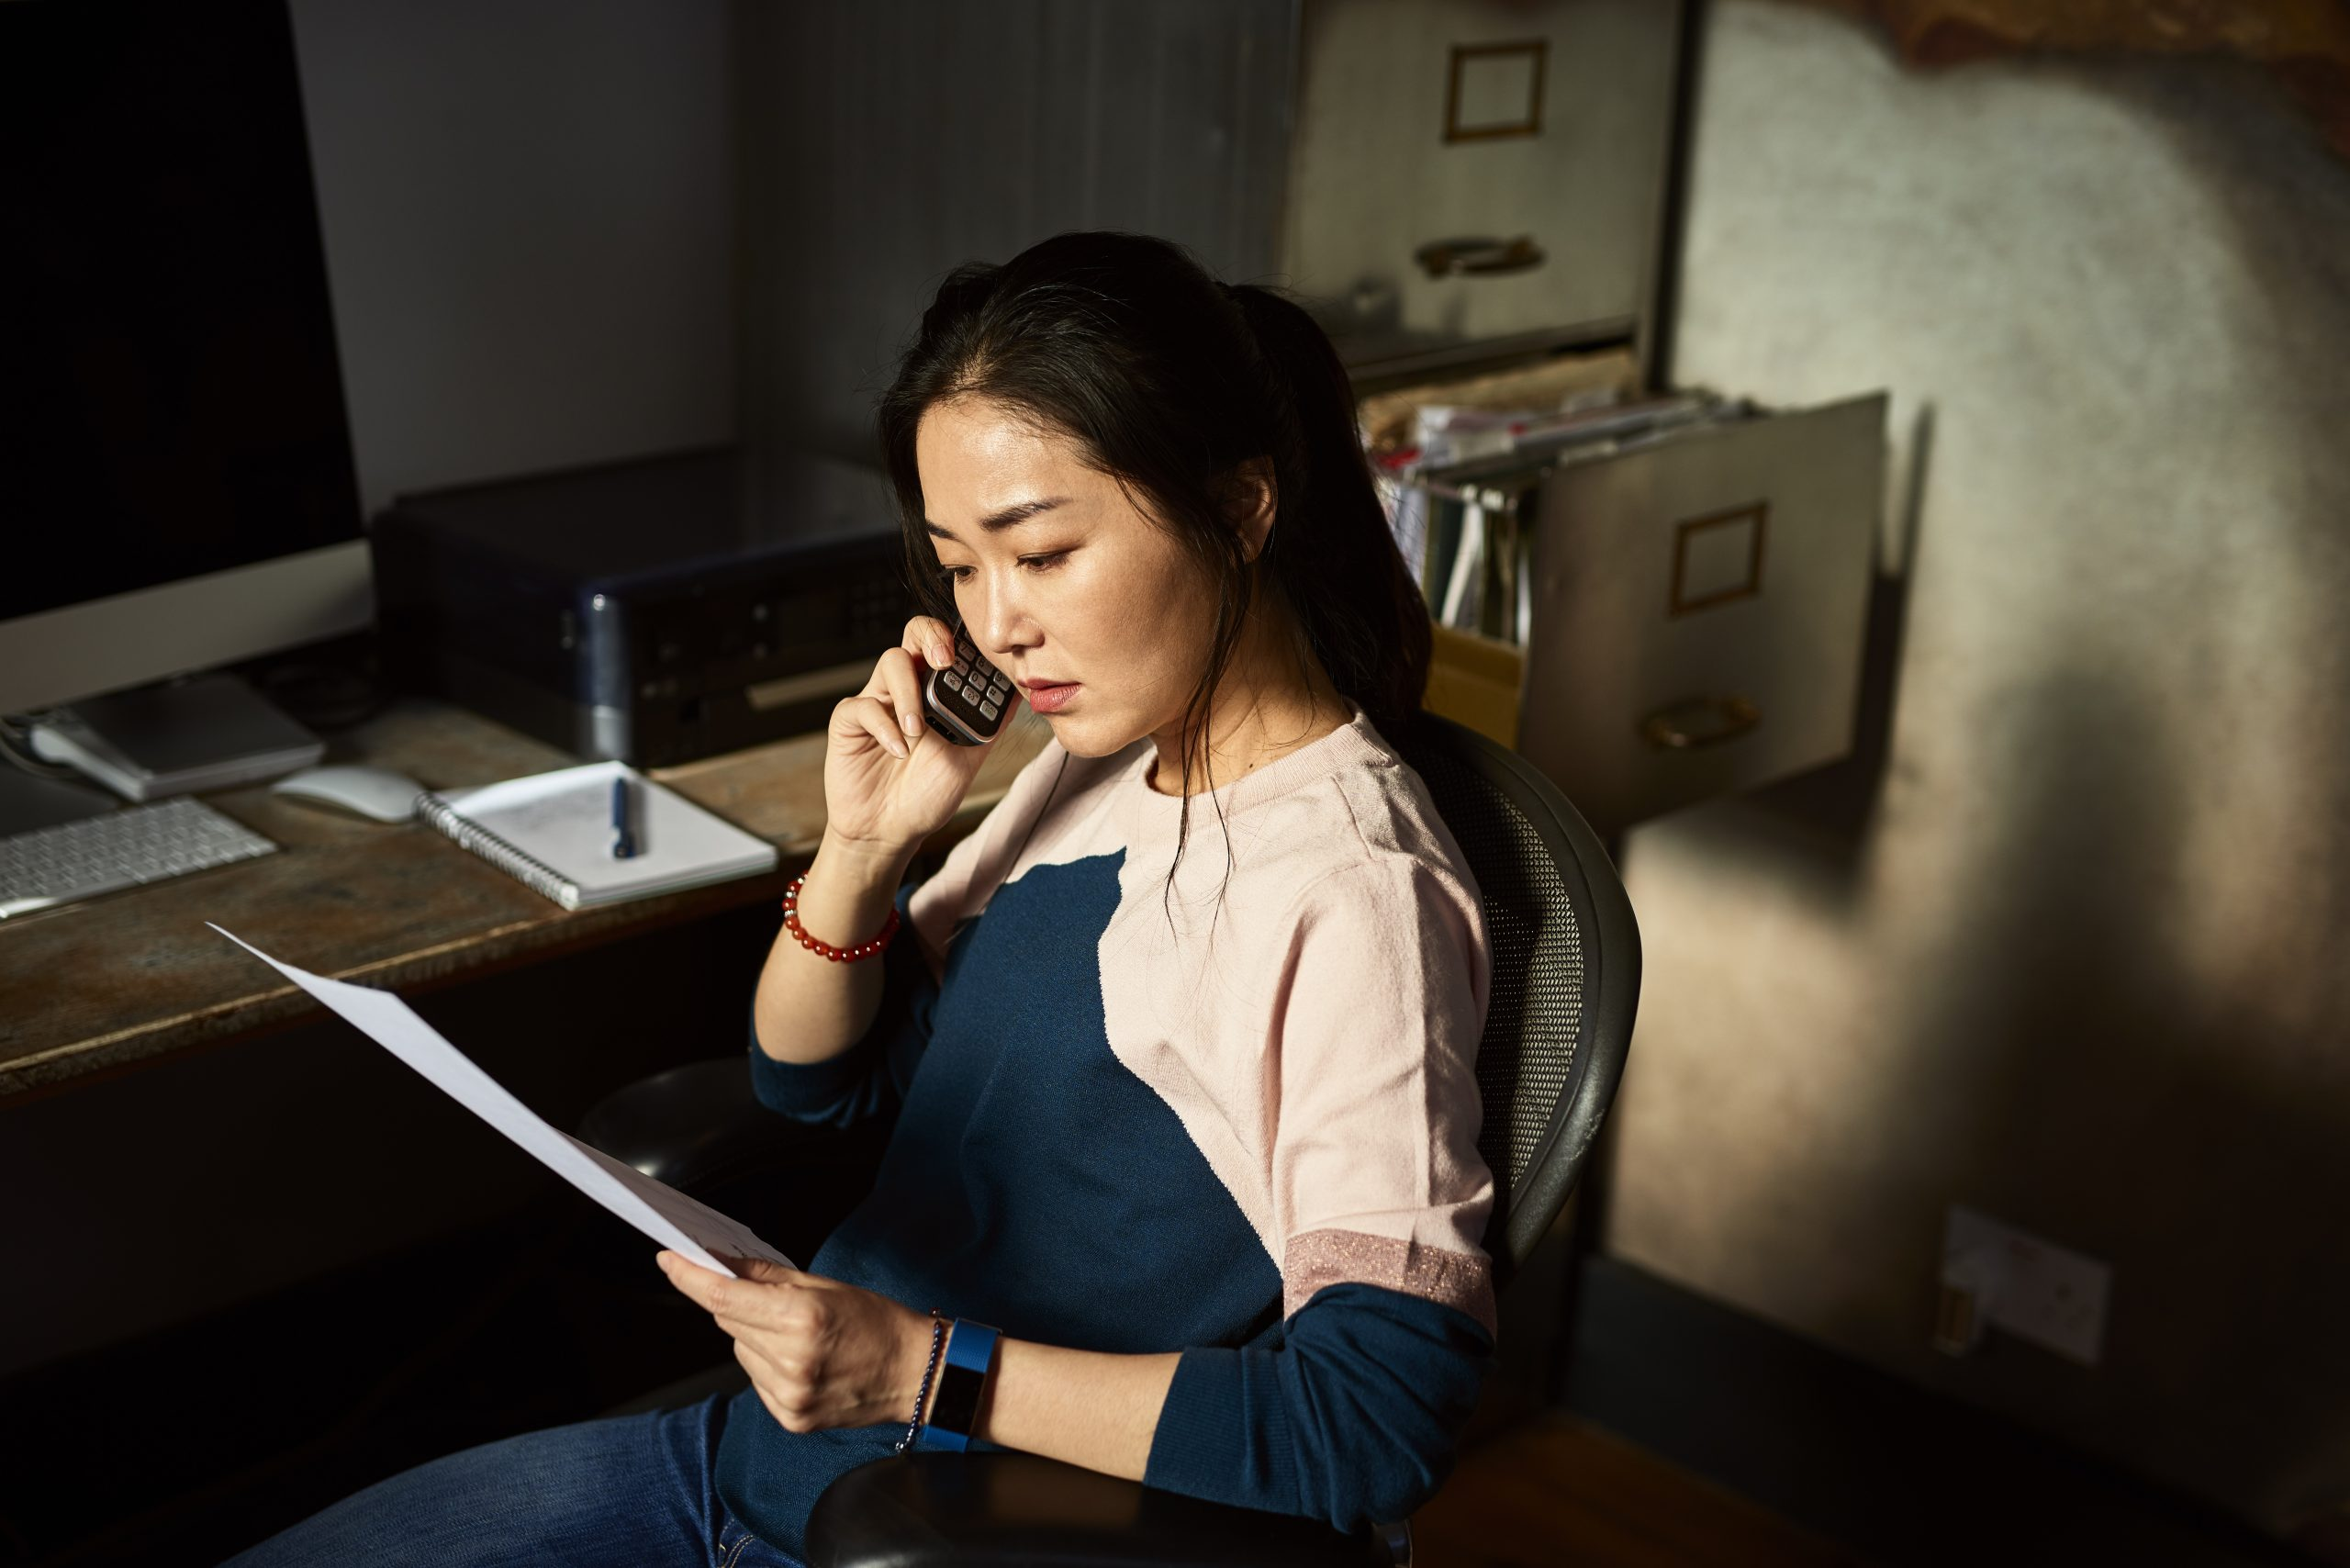 Portrait of Asian woman on cell phone reading important document